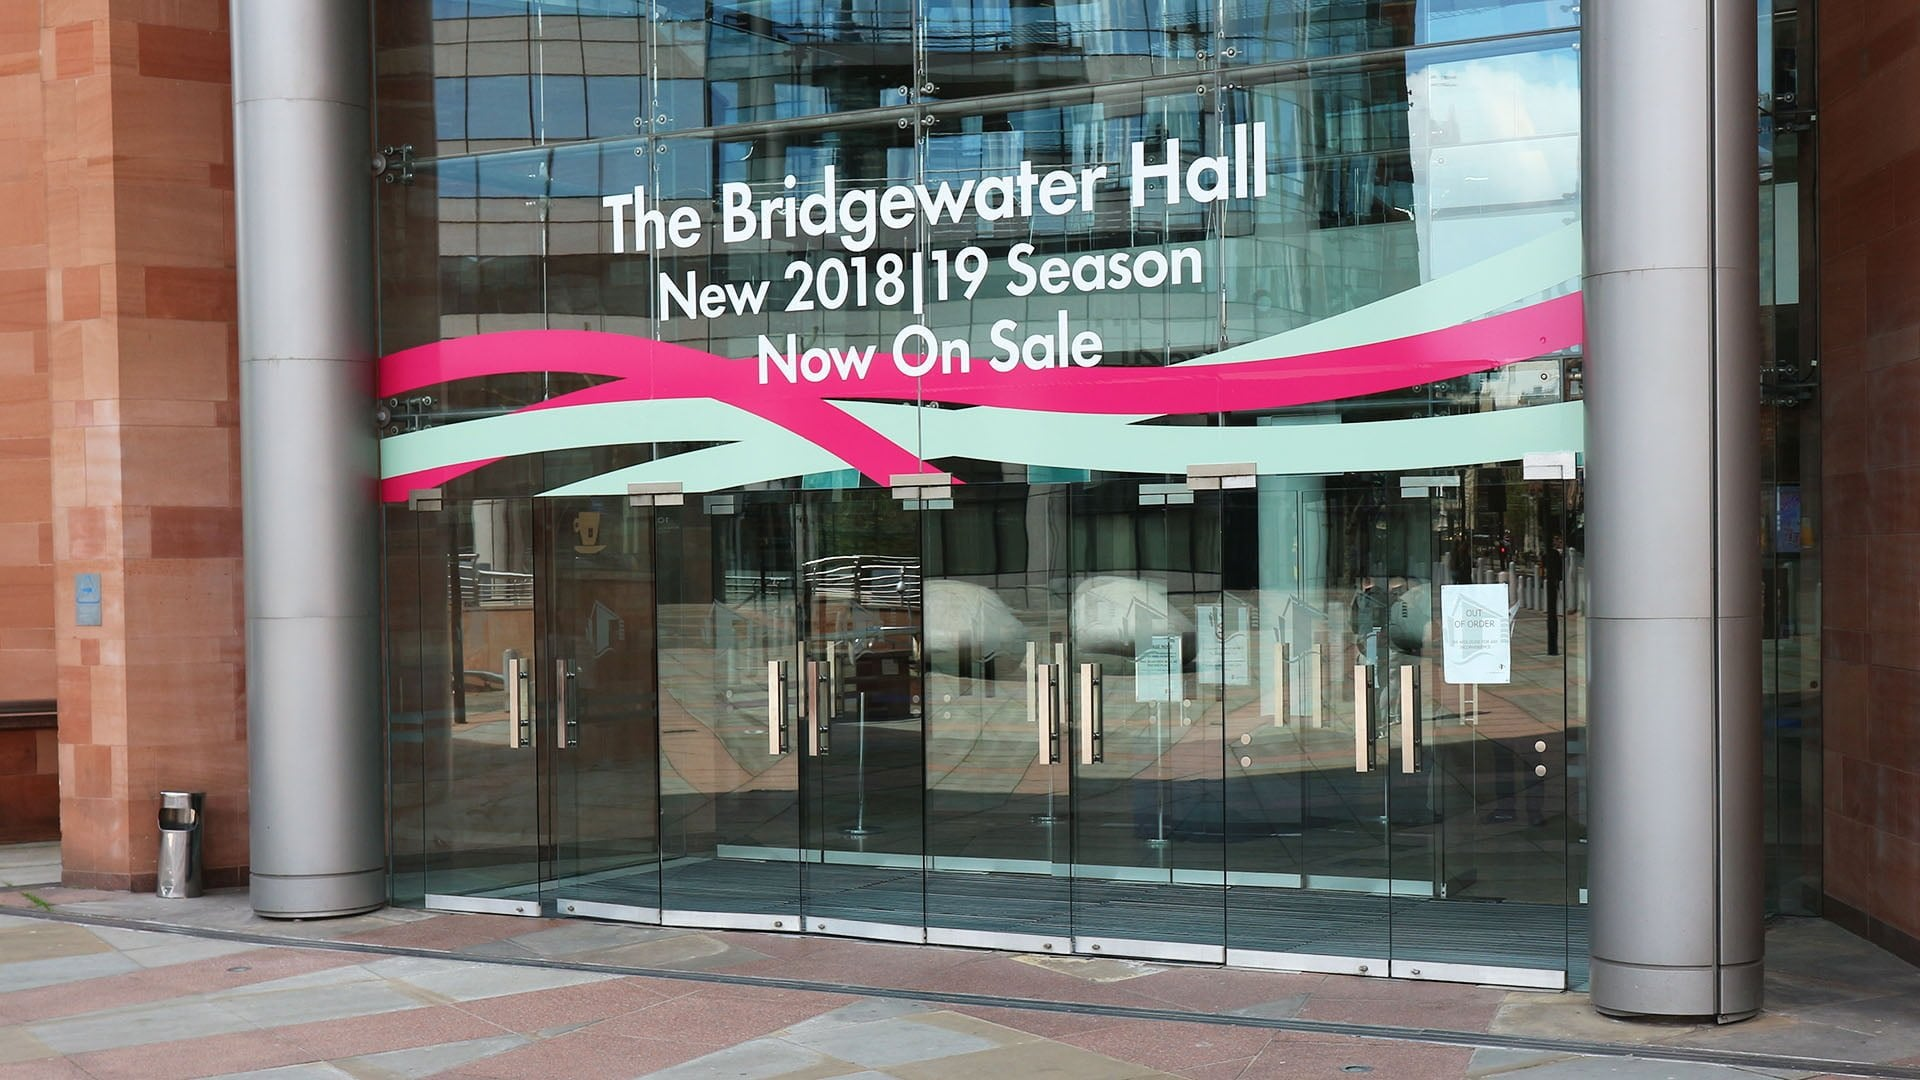 Plan.a Entrance Matting for The Bridgewater Hall